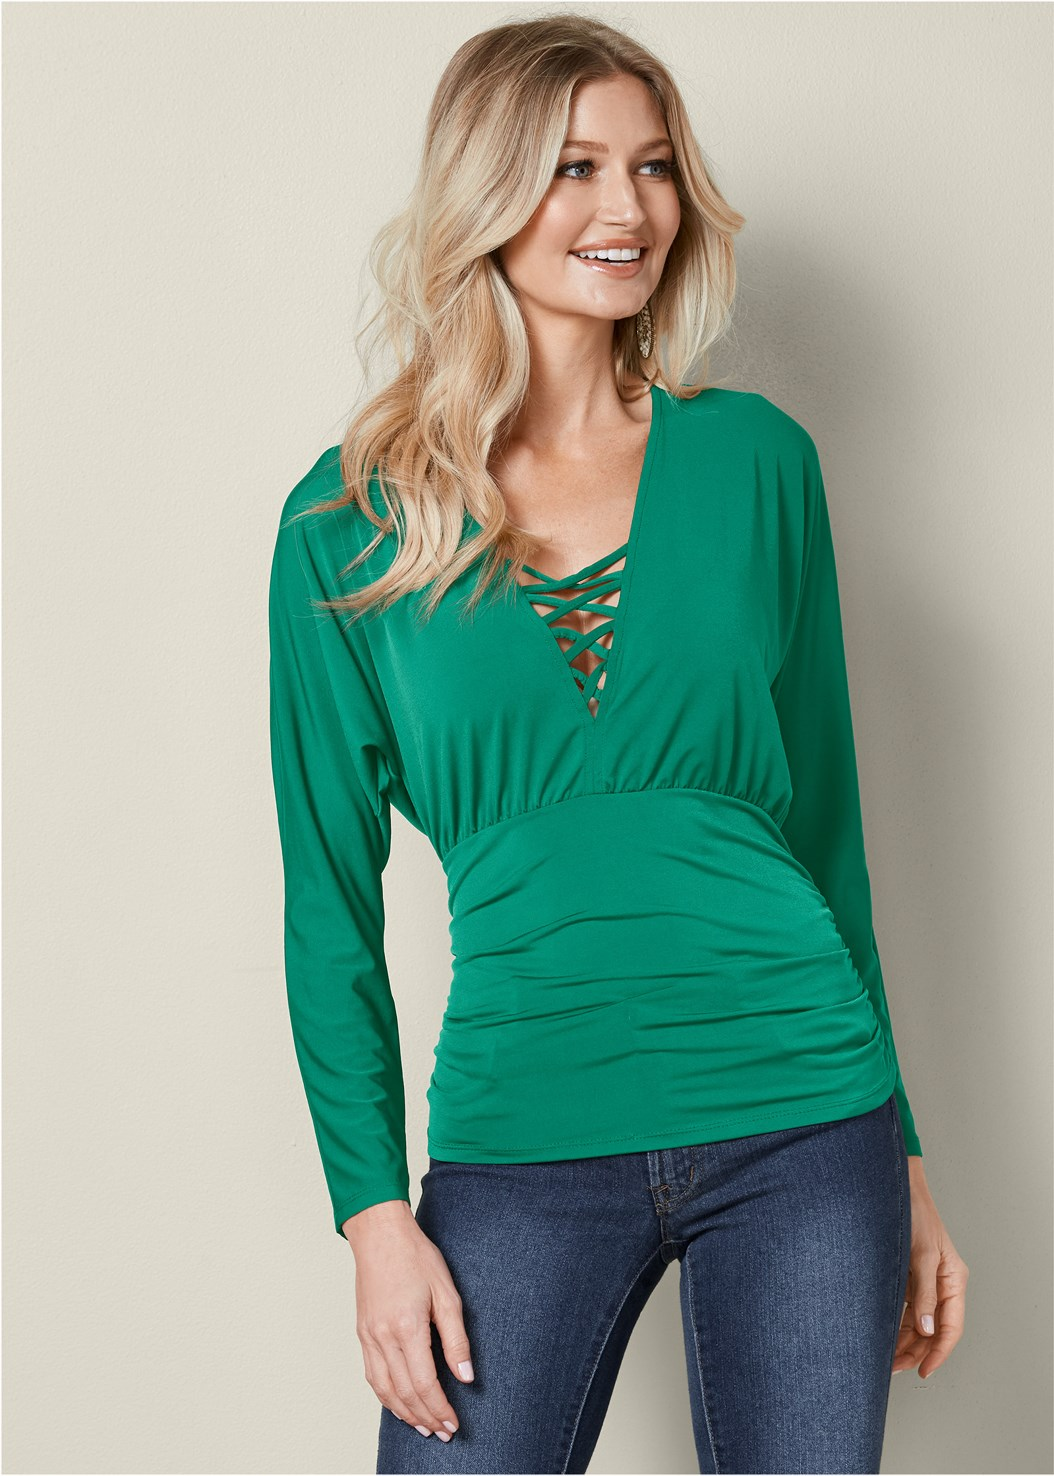 Strappy Detail Ruched Top,Mid Rise Color Skinny Jeans,Lace Up Tall Boots,Beaded Drop Earrings